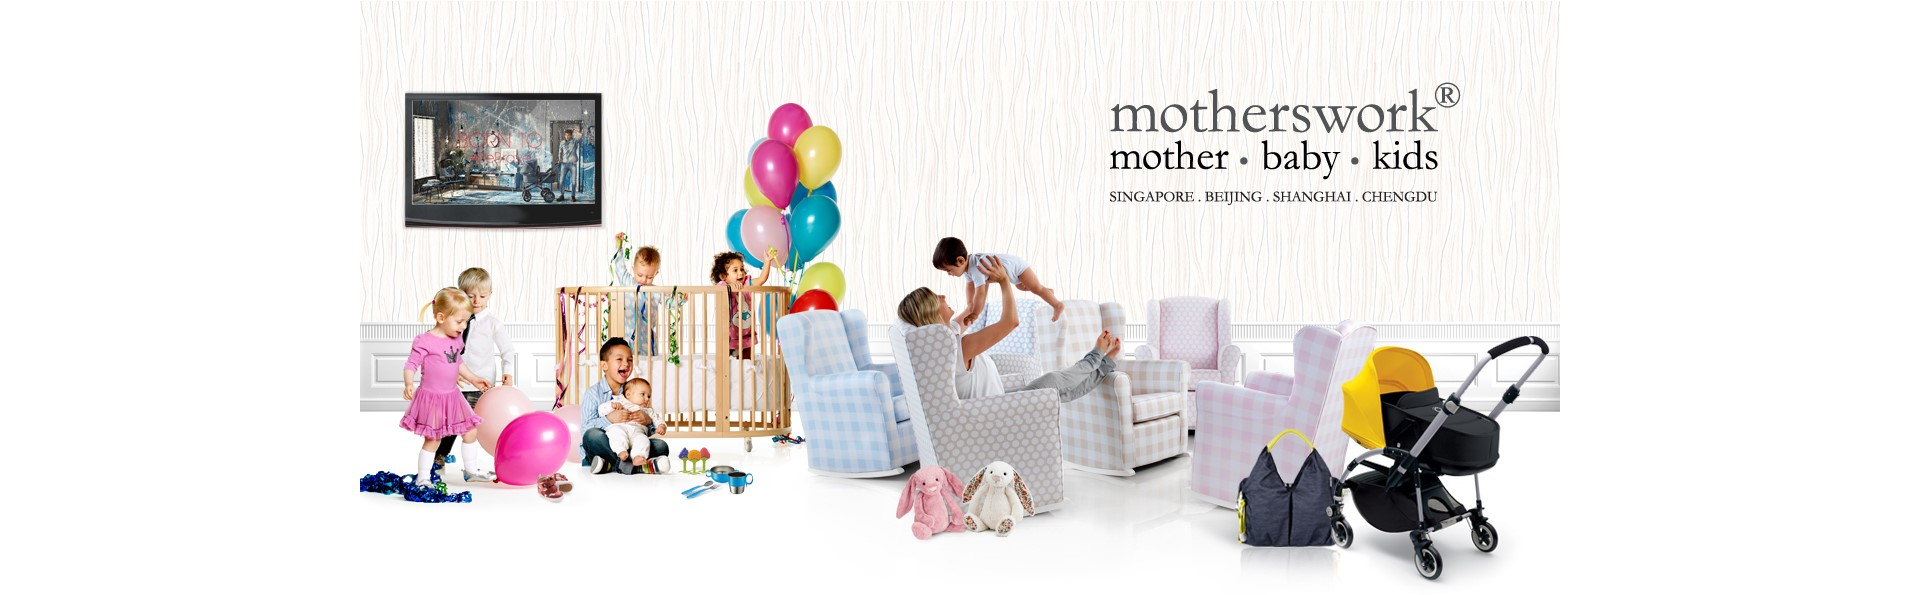 Motherswork at The Shoppes at Marina Bay Sands